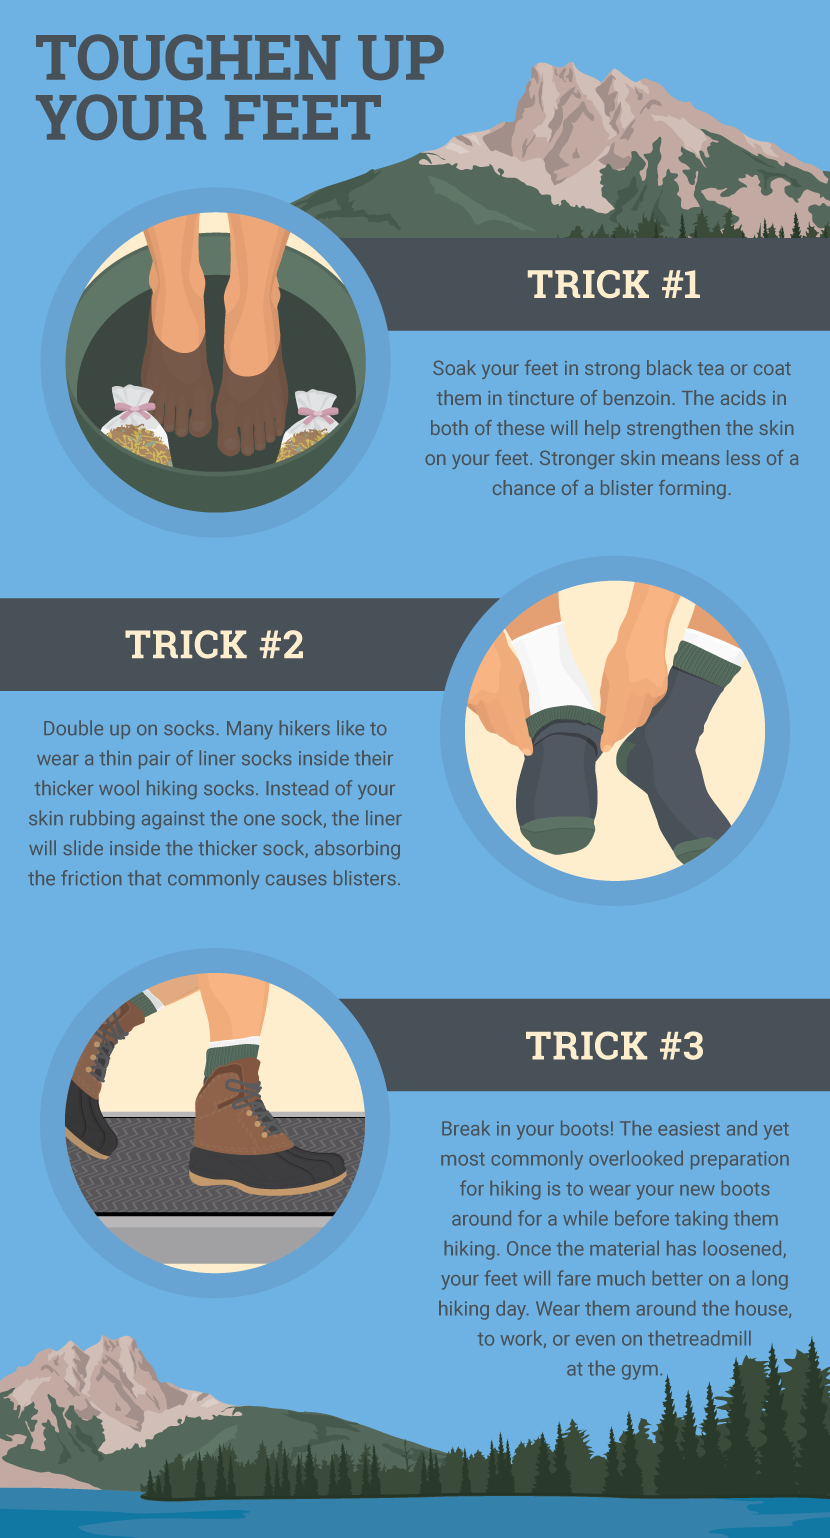 How To: Train for Your Next Hike